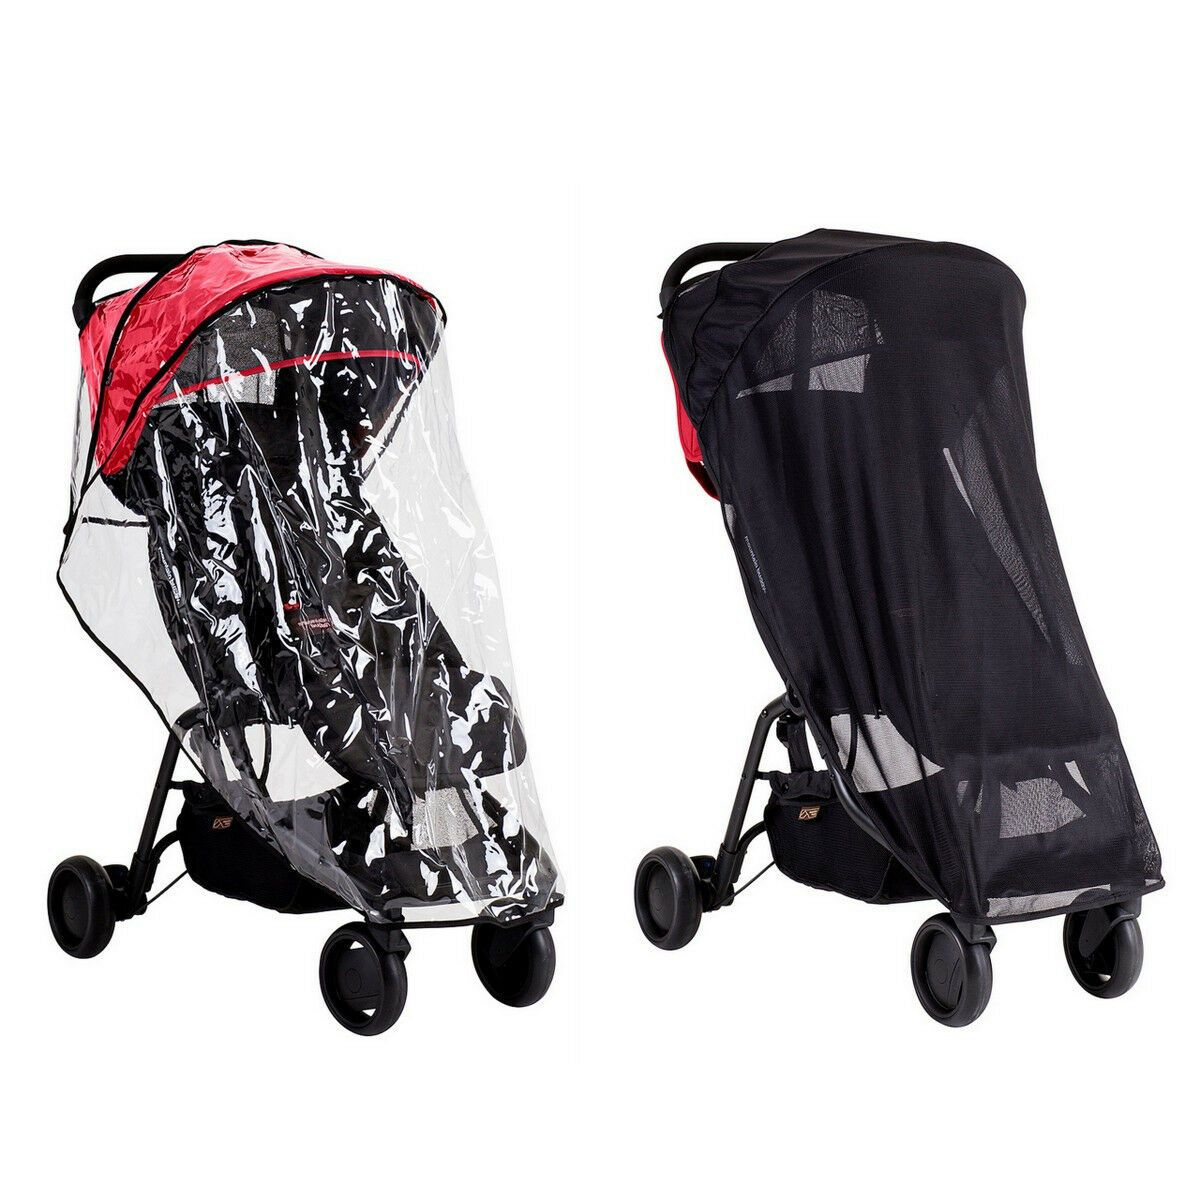 Details about Mountain Buggy Nano All Weather Cover Set